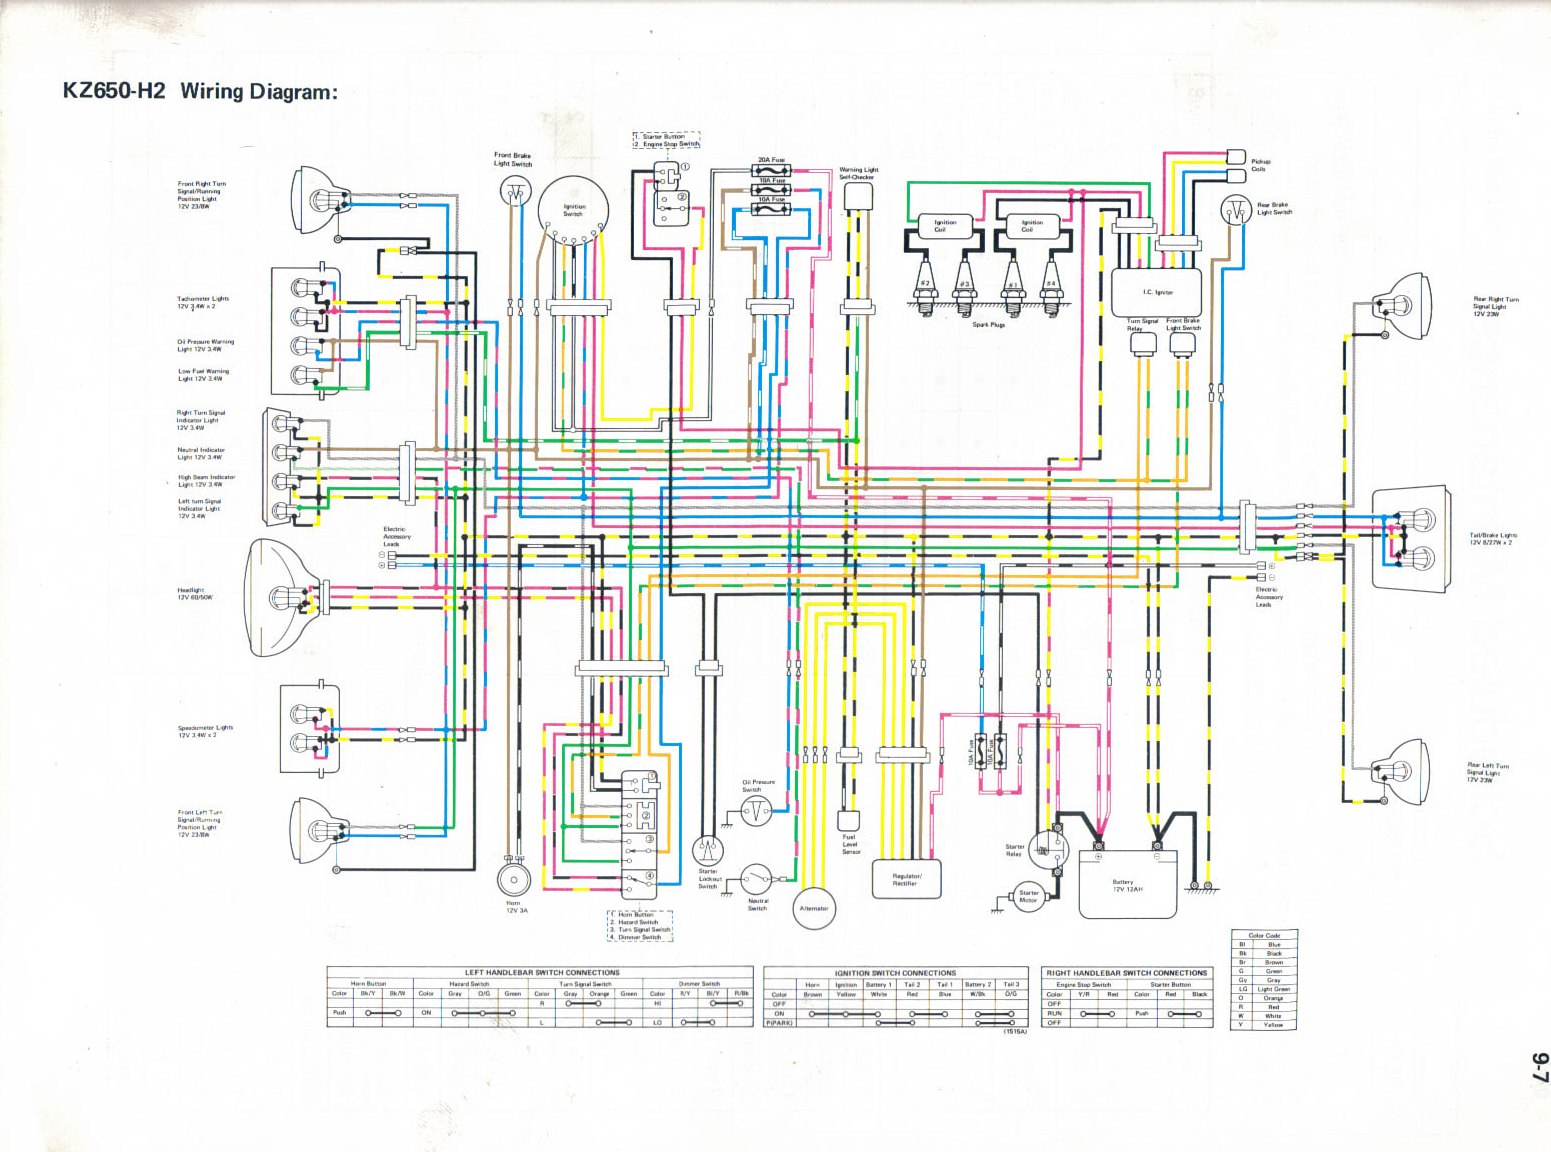 Wire Diagram Kawasaki - Wiring Diagram Sys on yamaha wiring diagram, volvo fh12 wiring diagram, harley wiring diagram, yacht wiring diagram, light switch wiring diagram, massey ferguson 750 wiring diagram, honda wiring diagram, triumph 750 wiring diagram, john deere 750 wiring diagram,